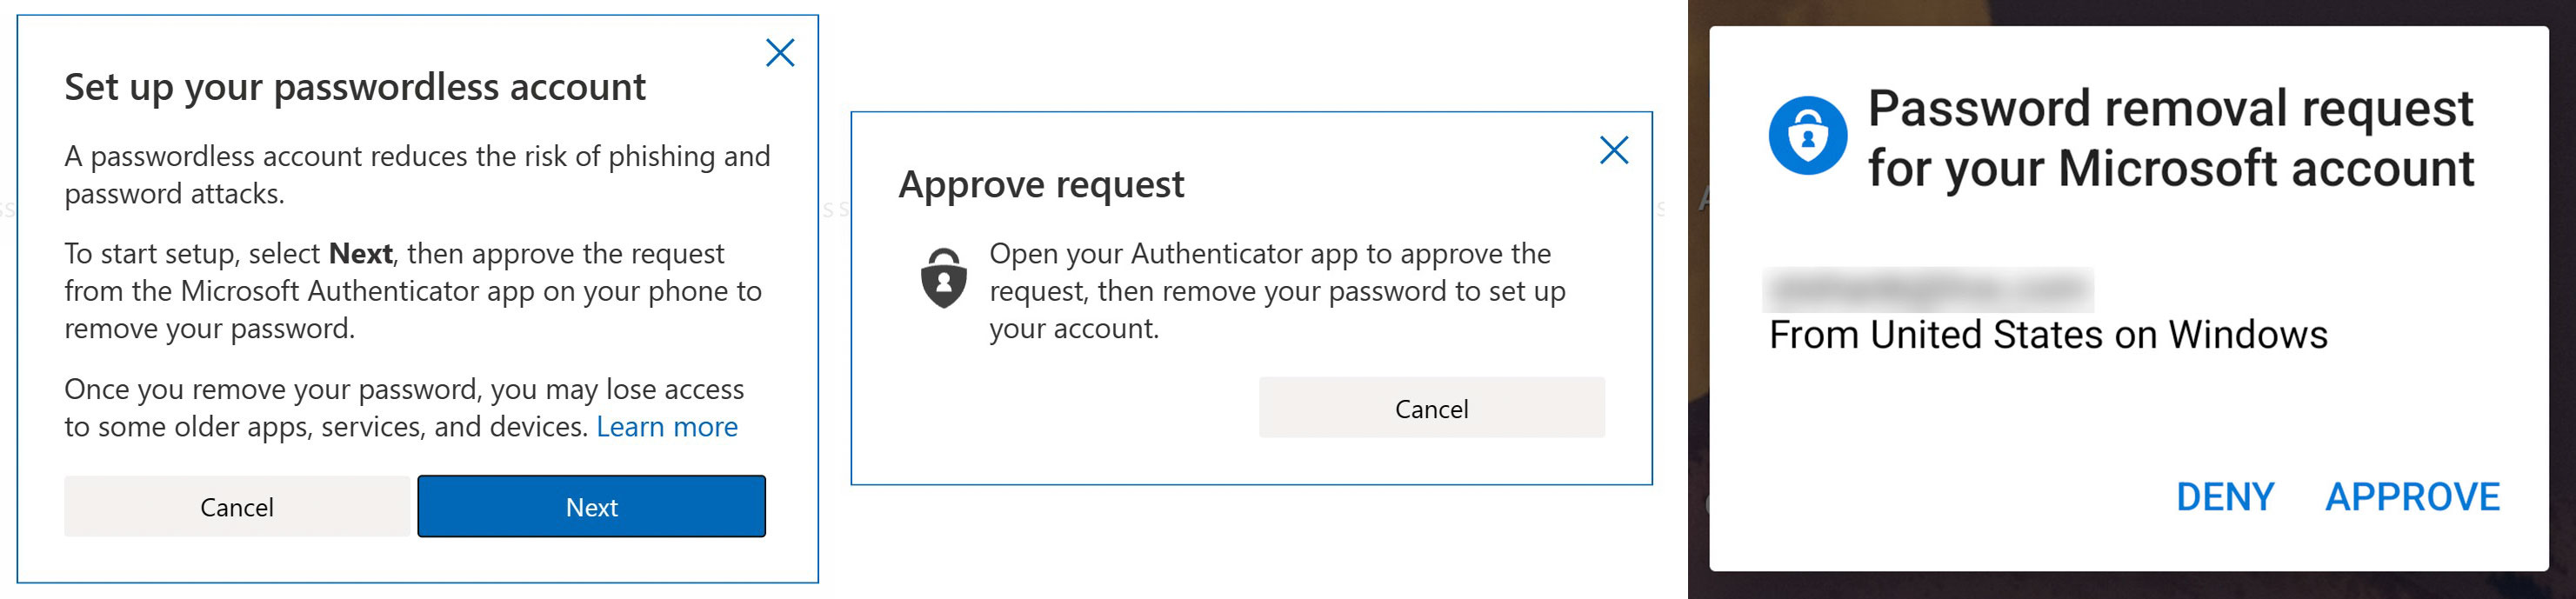 Microsoft account passwordless approval process